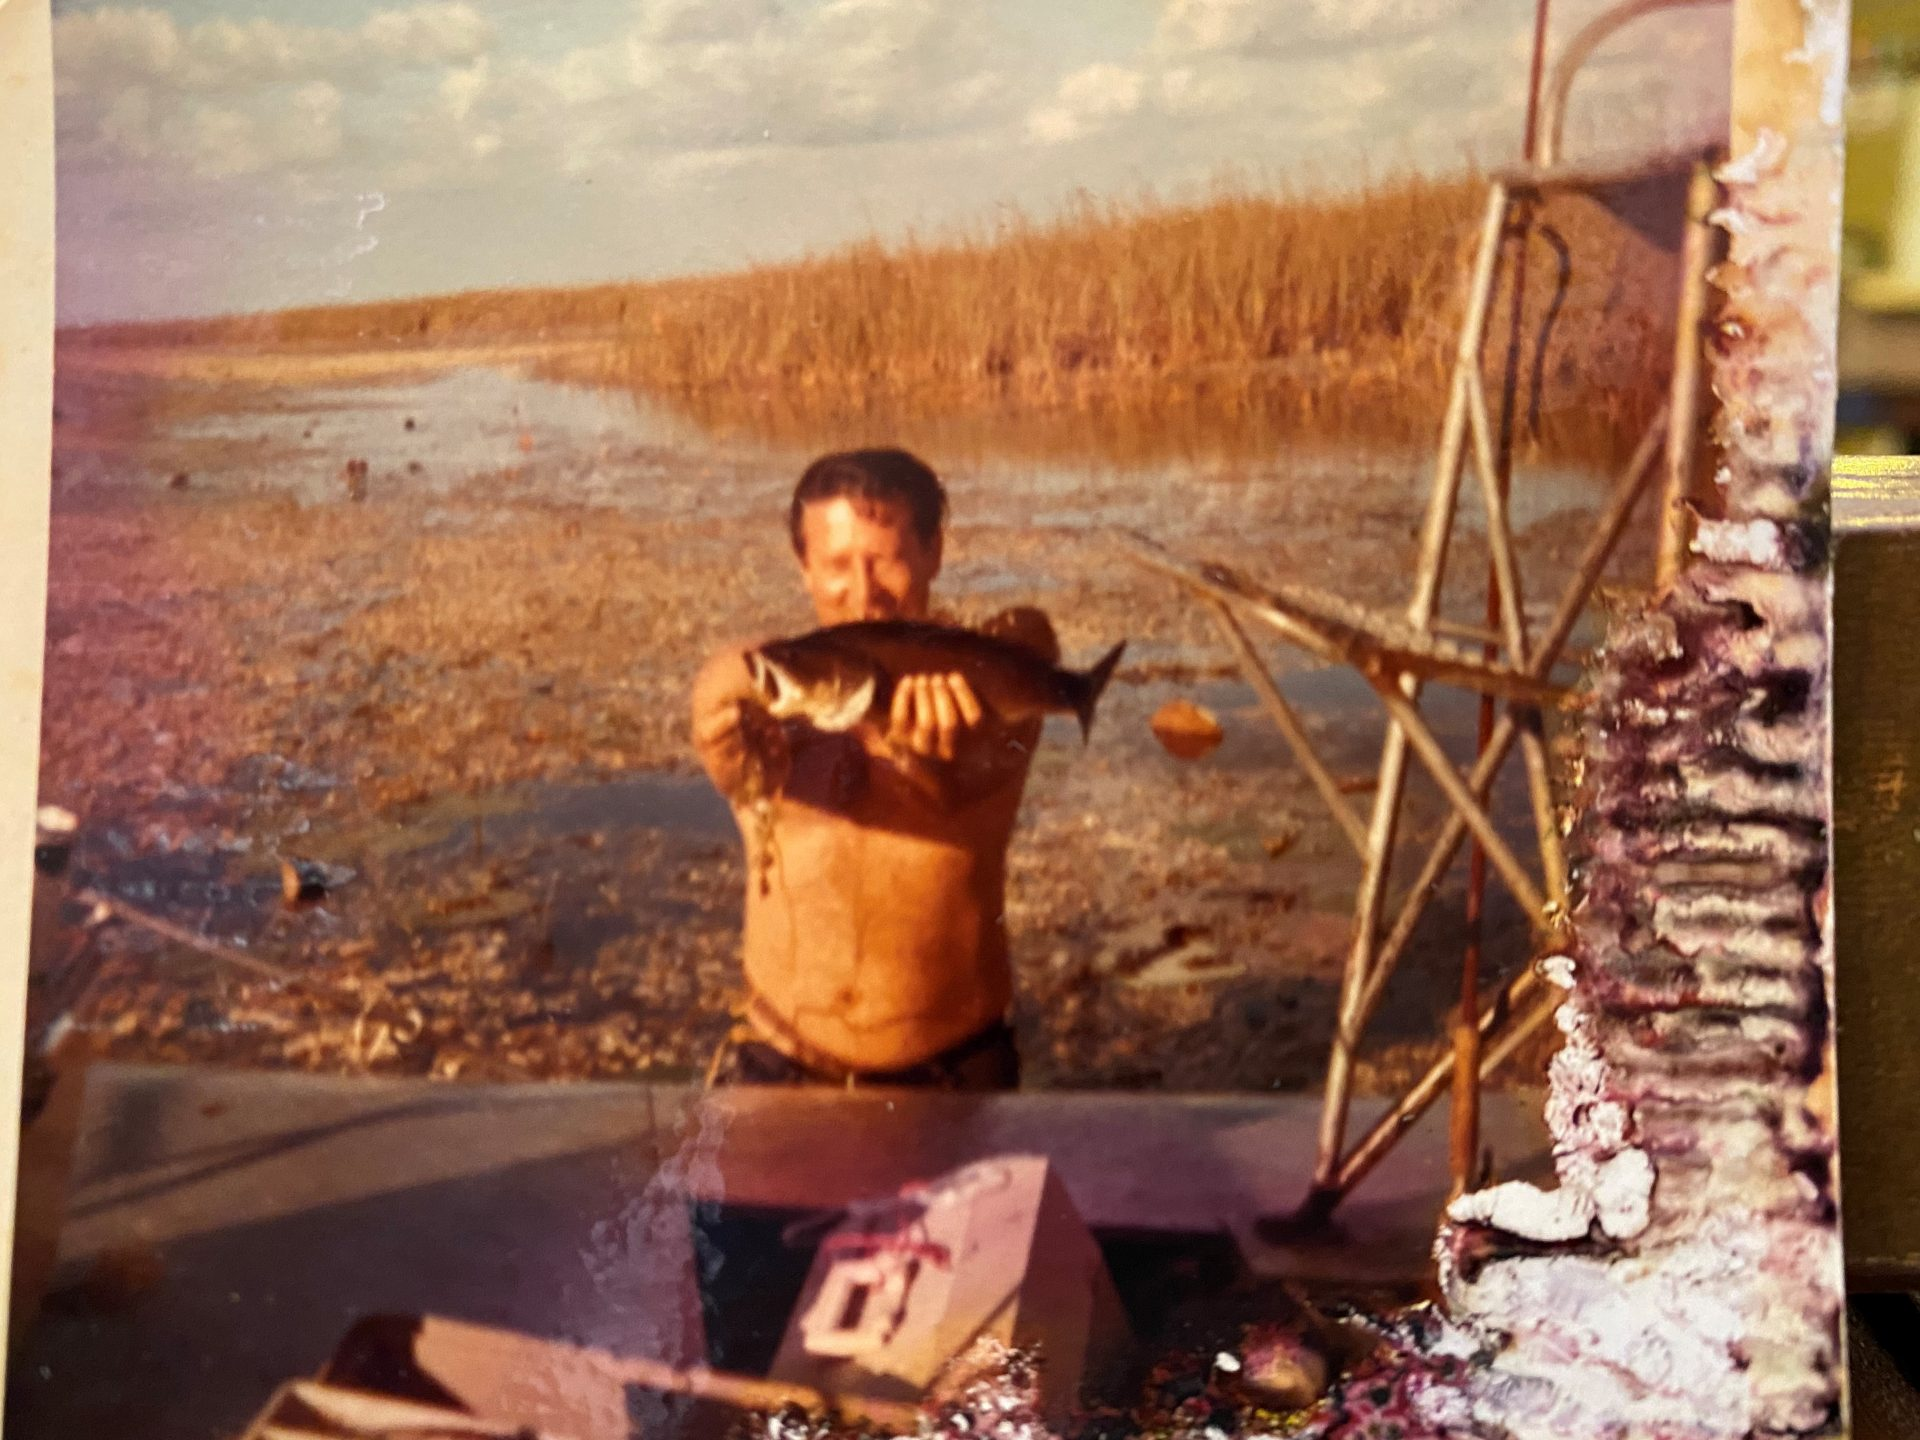 Bobby wade fishing in the Glades